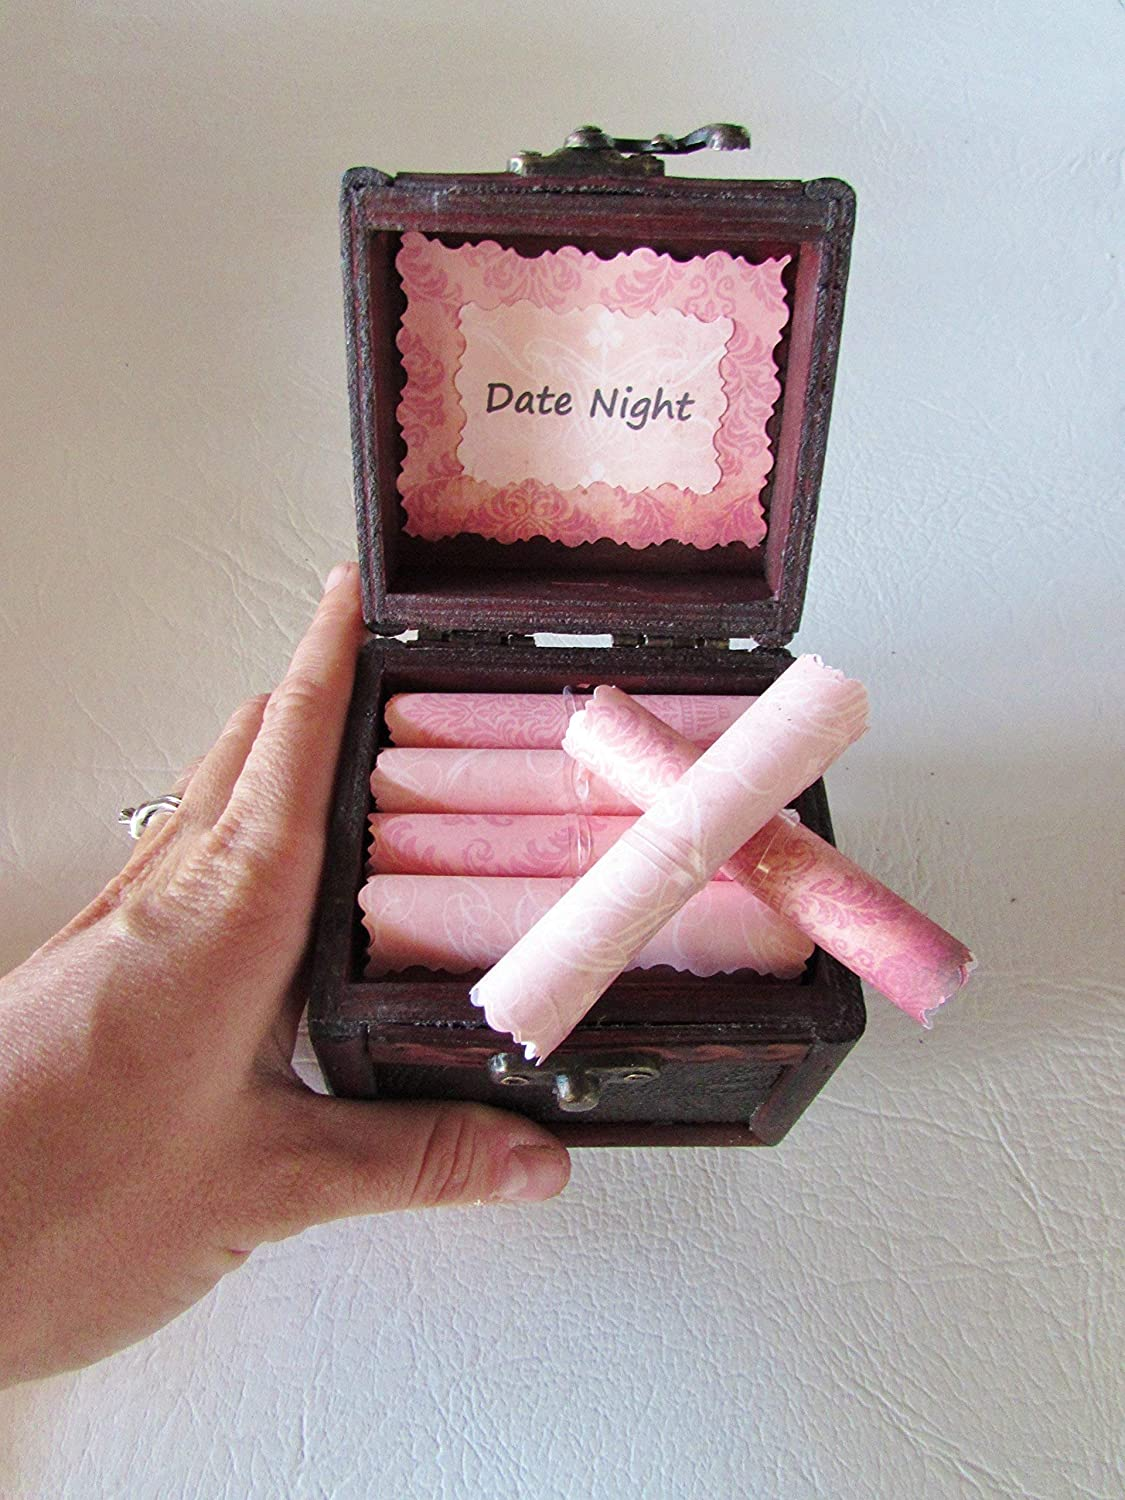 Romantic Gift For HER Date Night Scroll Box Wood Filled With 12 Great Dates Valentine Her Birthday Anniversary